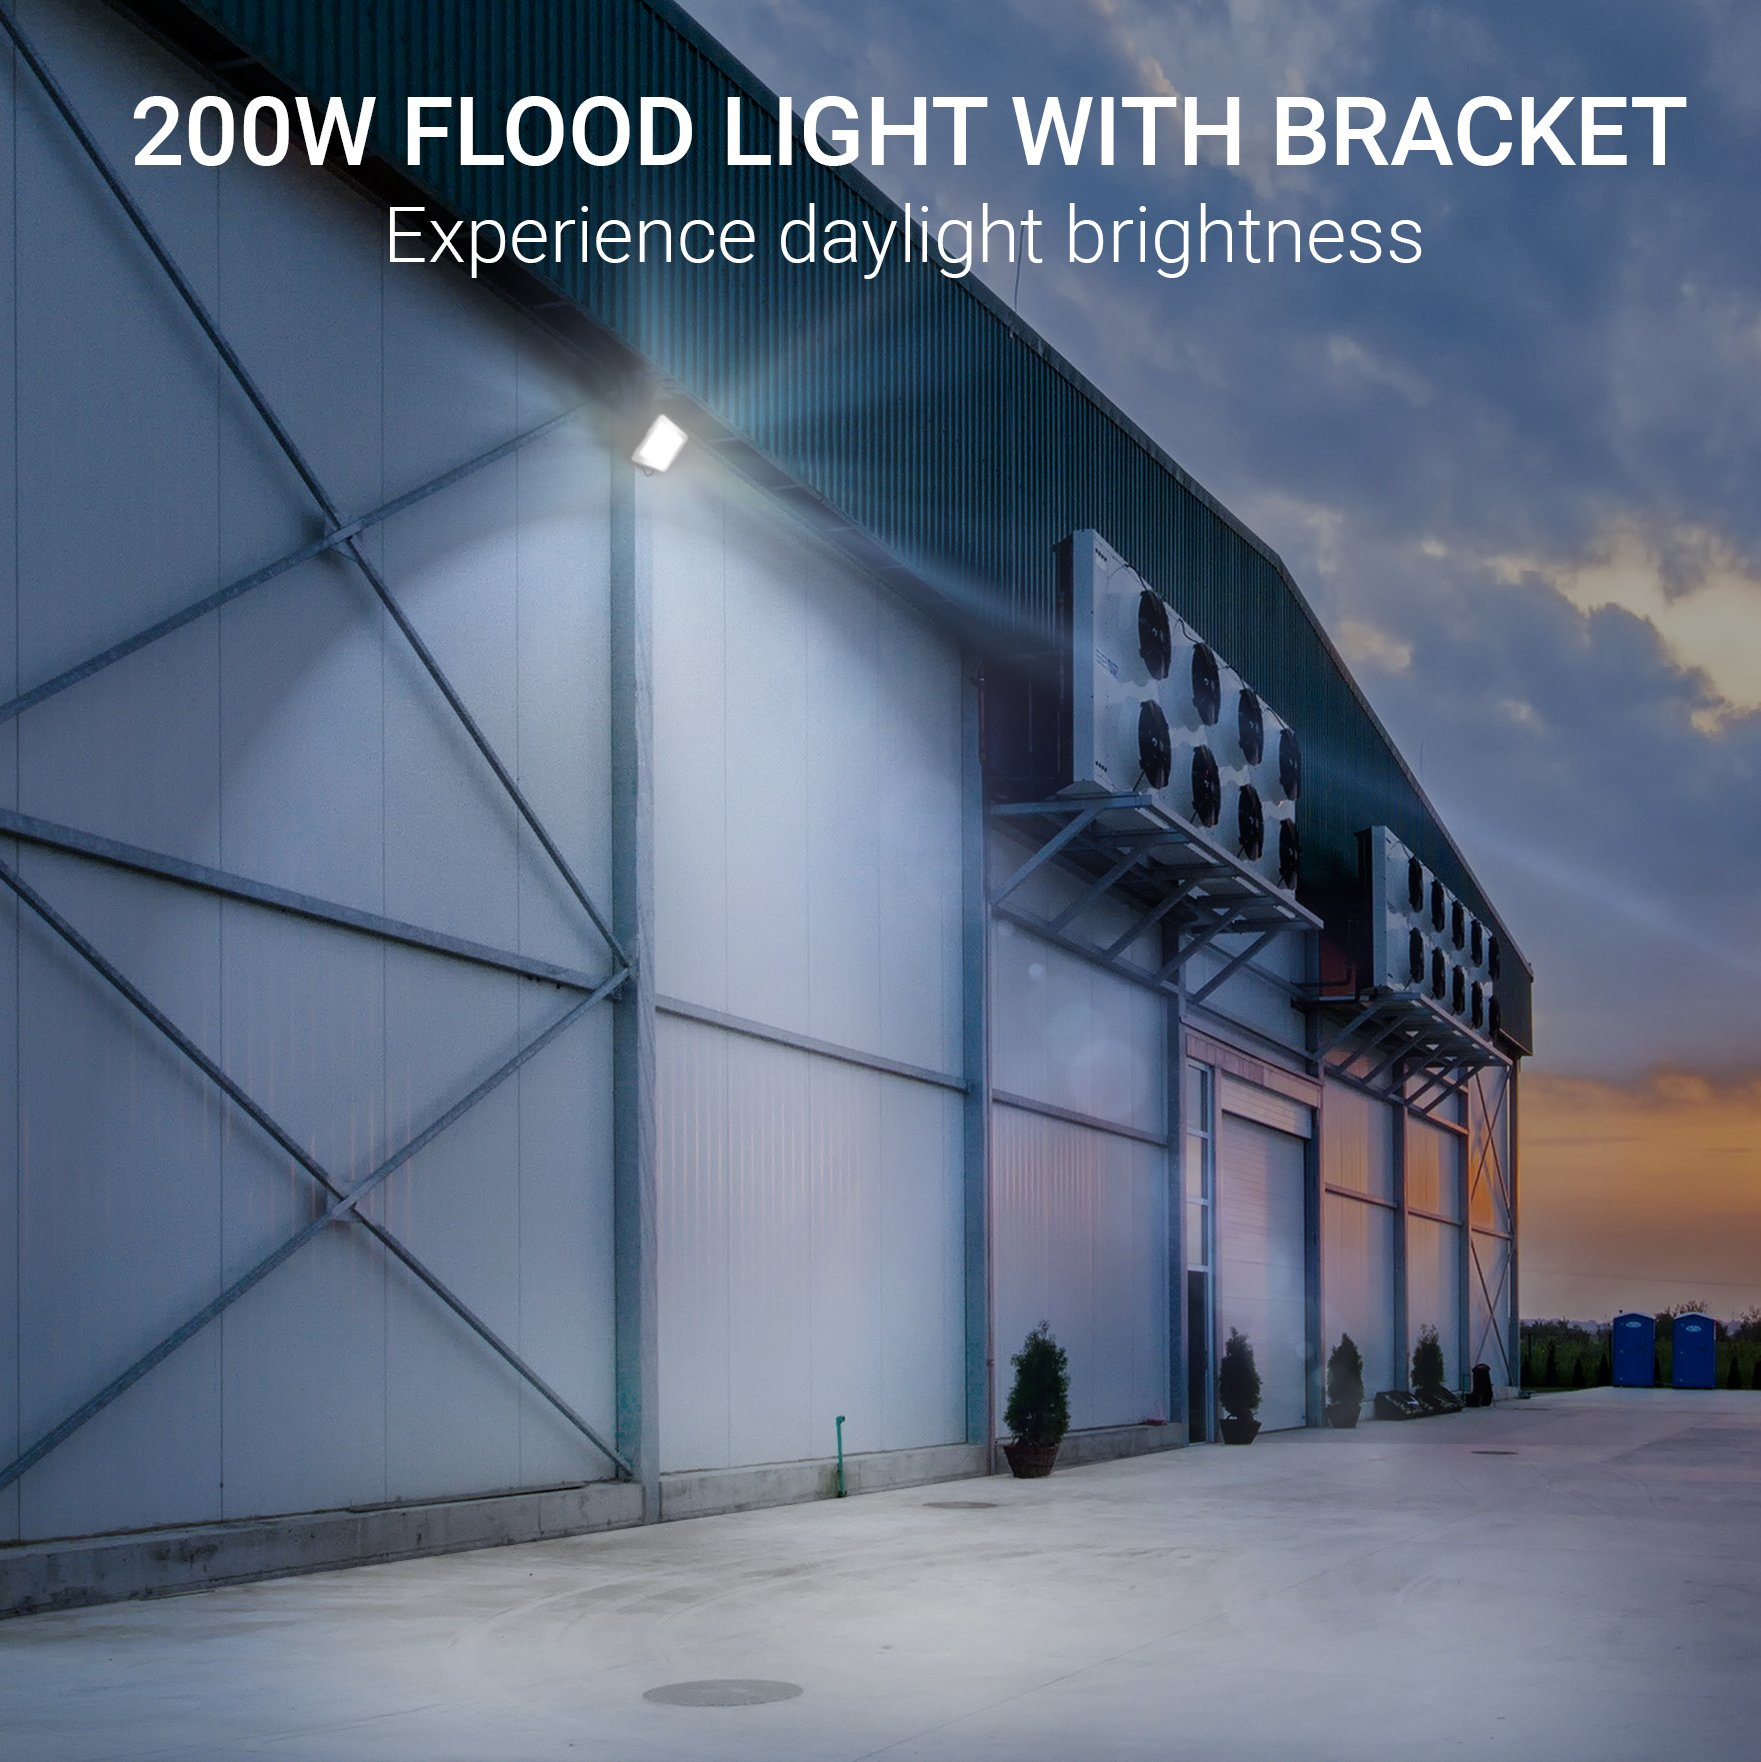 Hyperikon LED Flood Light 200W (1000 Watt Eq.) 180° Rotatable Bracket, 5000k,16000 Lm, Super Bright Outdoor LED Floodlight, Weatherproof IP65, Suitable for Dry and Damp Locations, 110V, 2-Pack by Hyperikon (Image #5)